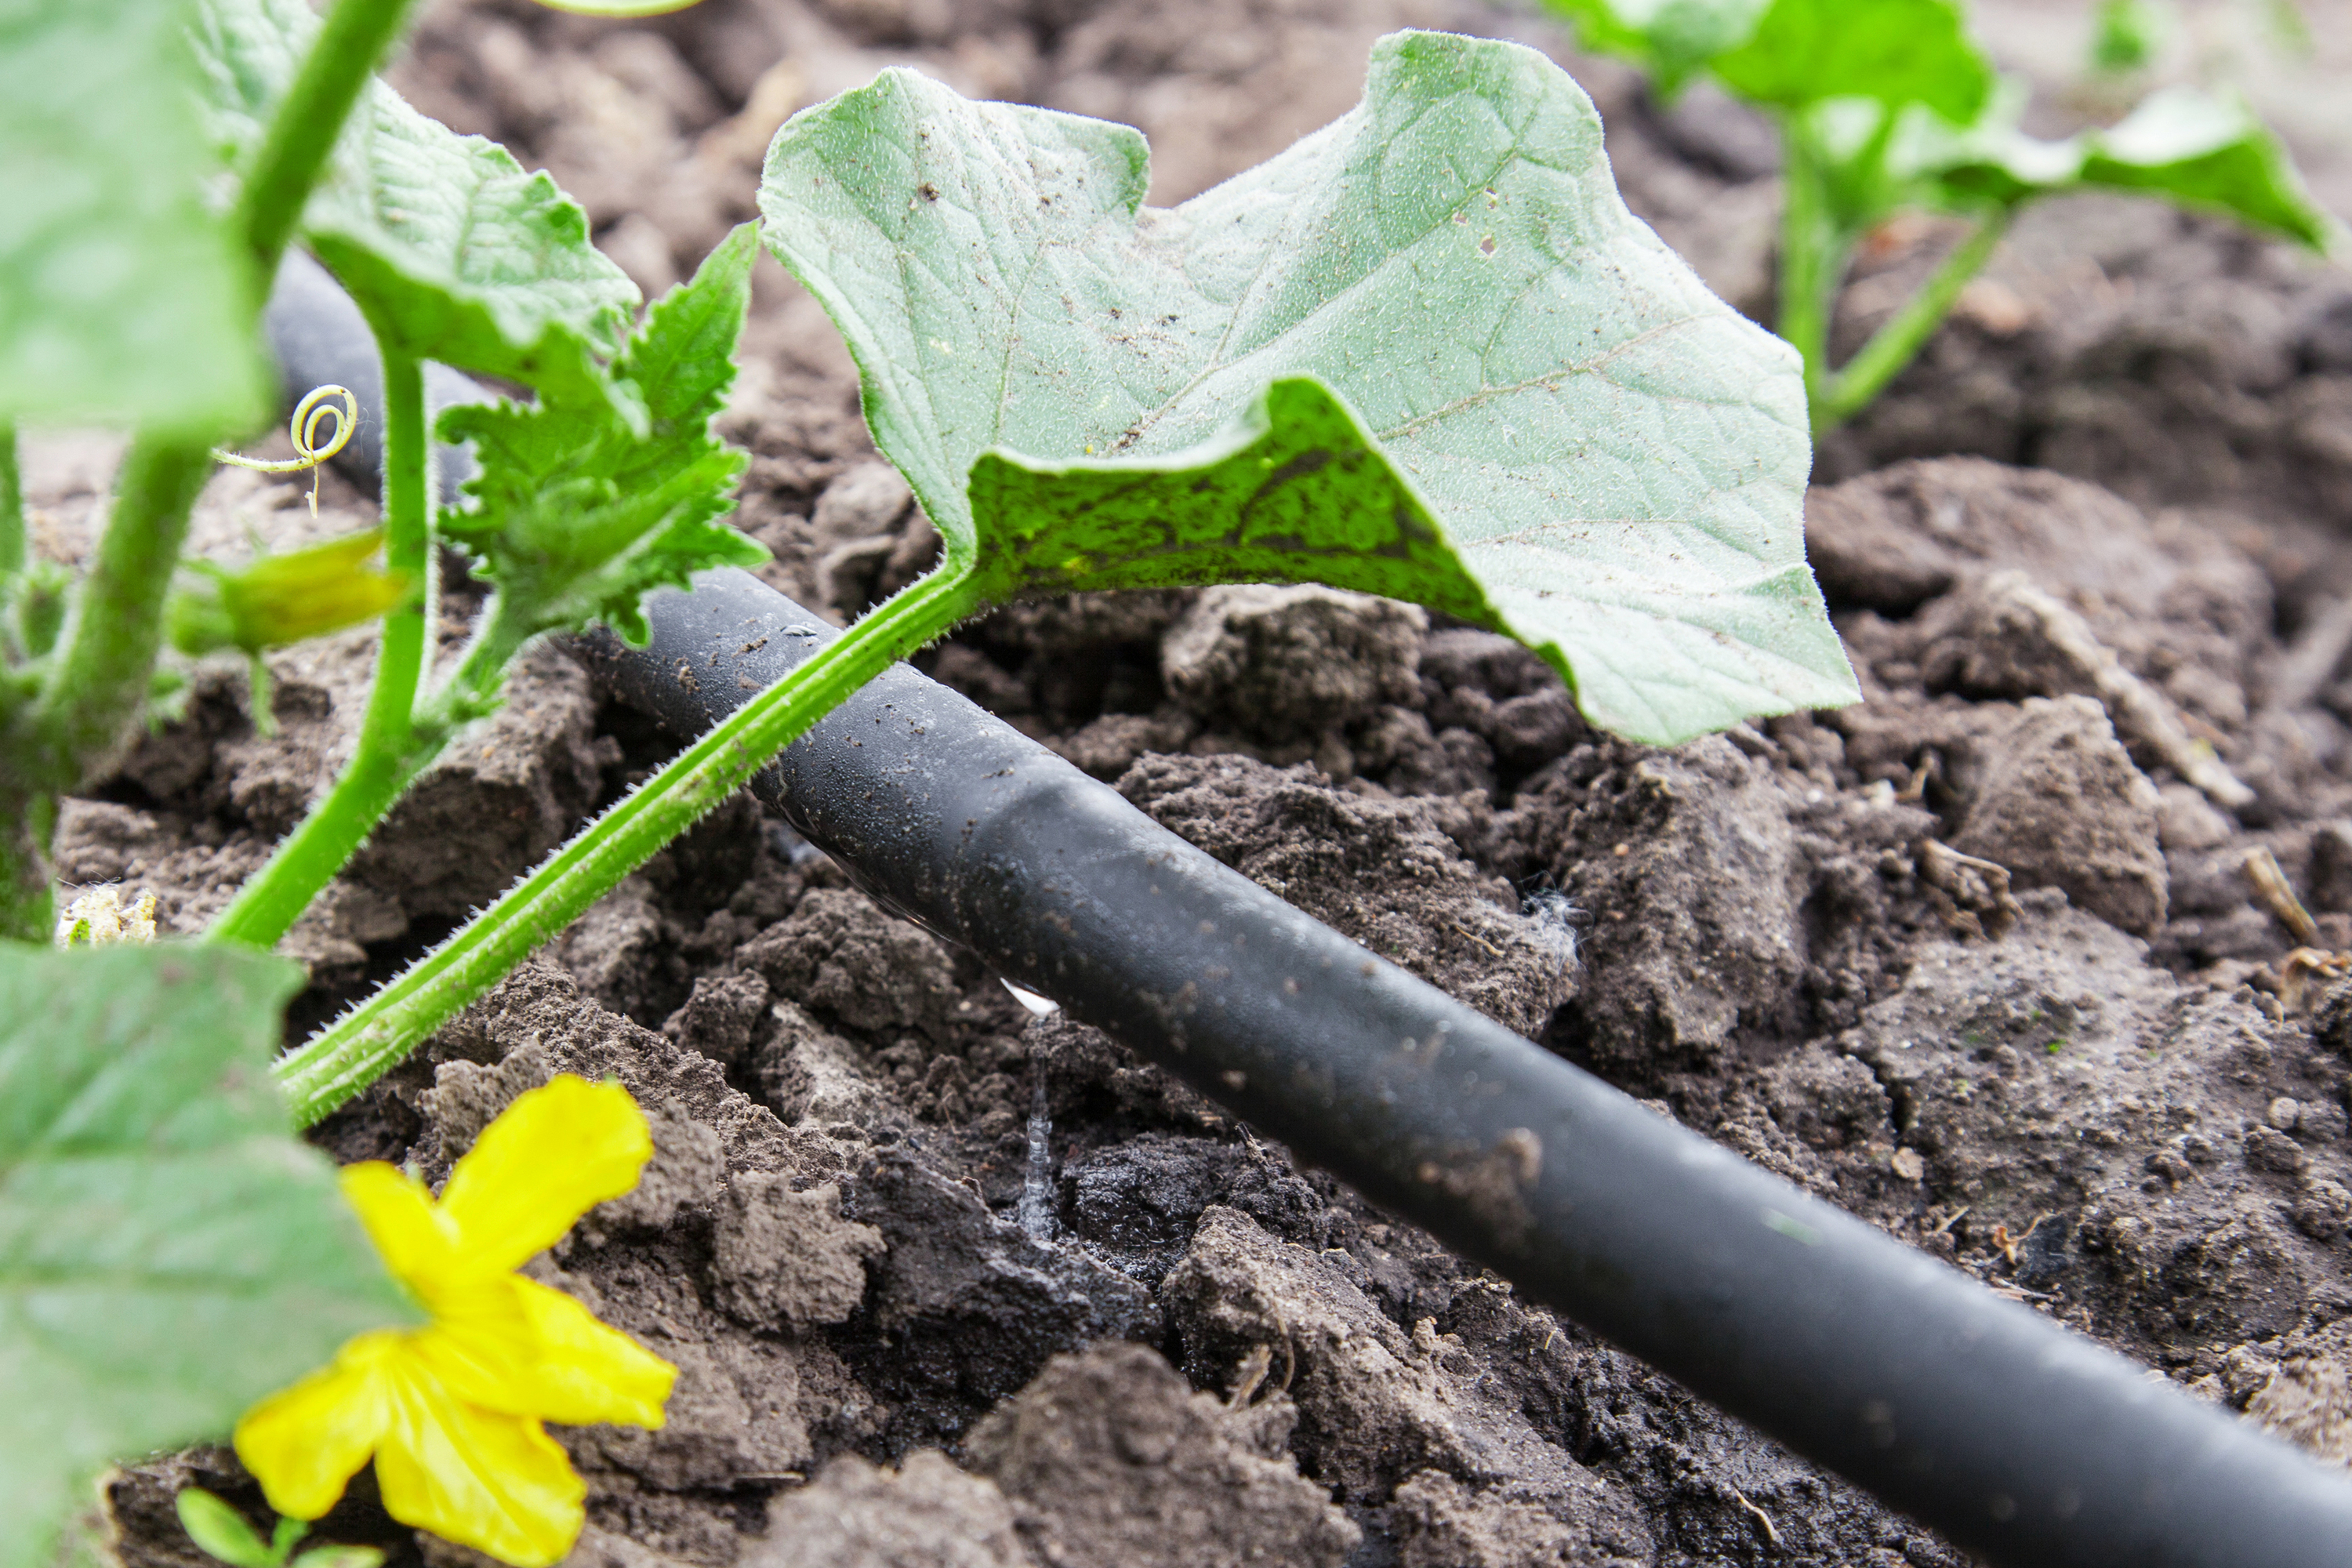 Having a drip irrigation system is one of the best things you can have in your garden. Learn all about drip irrigation systems here.